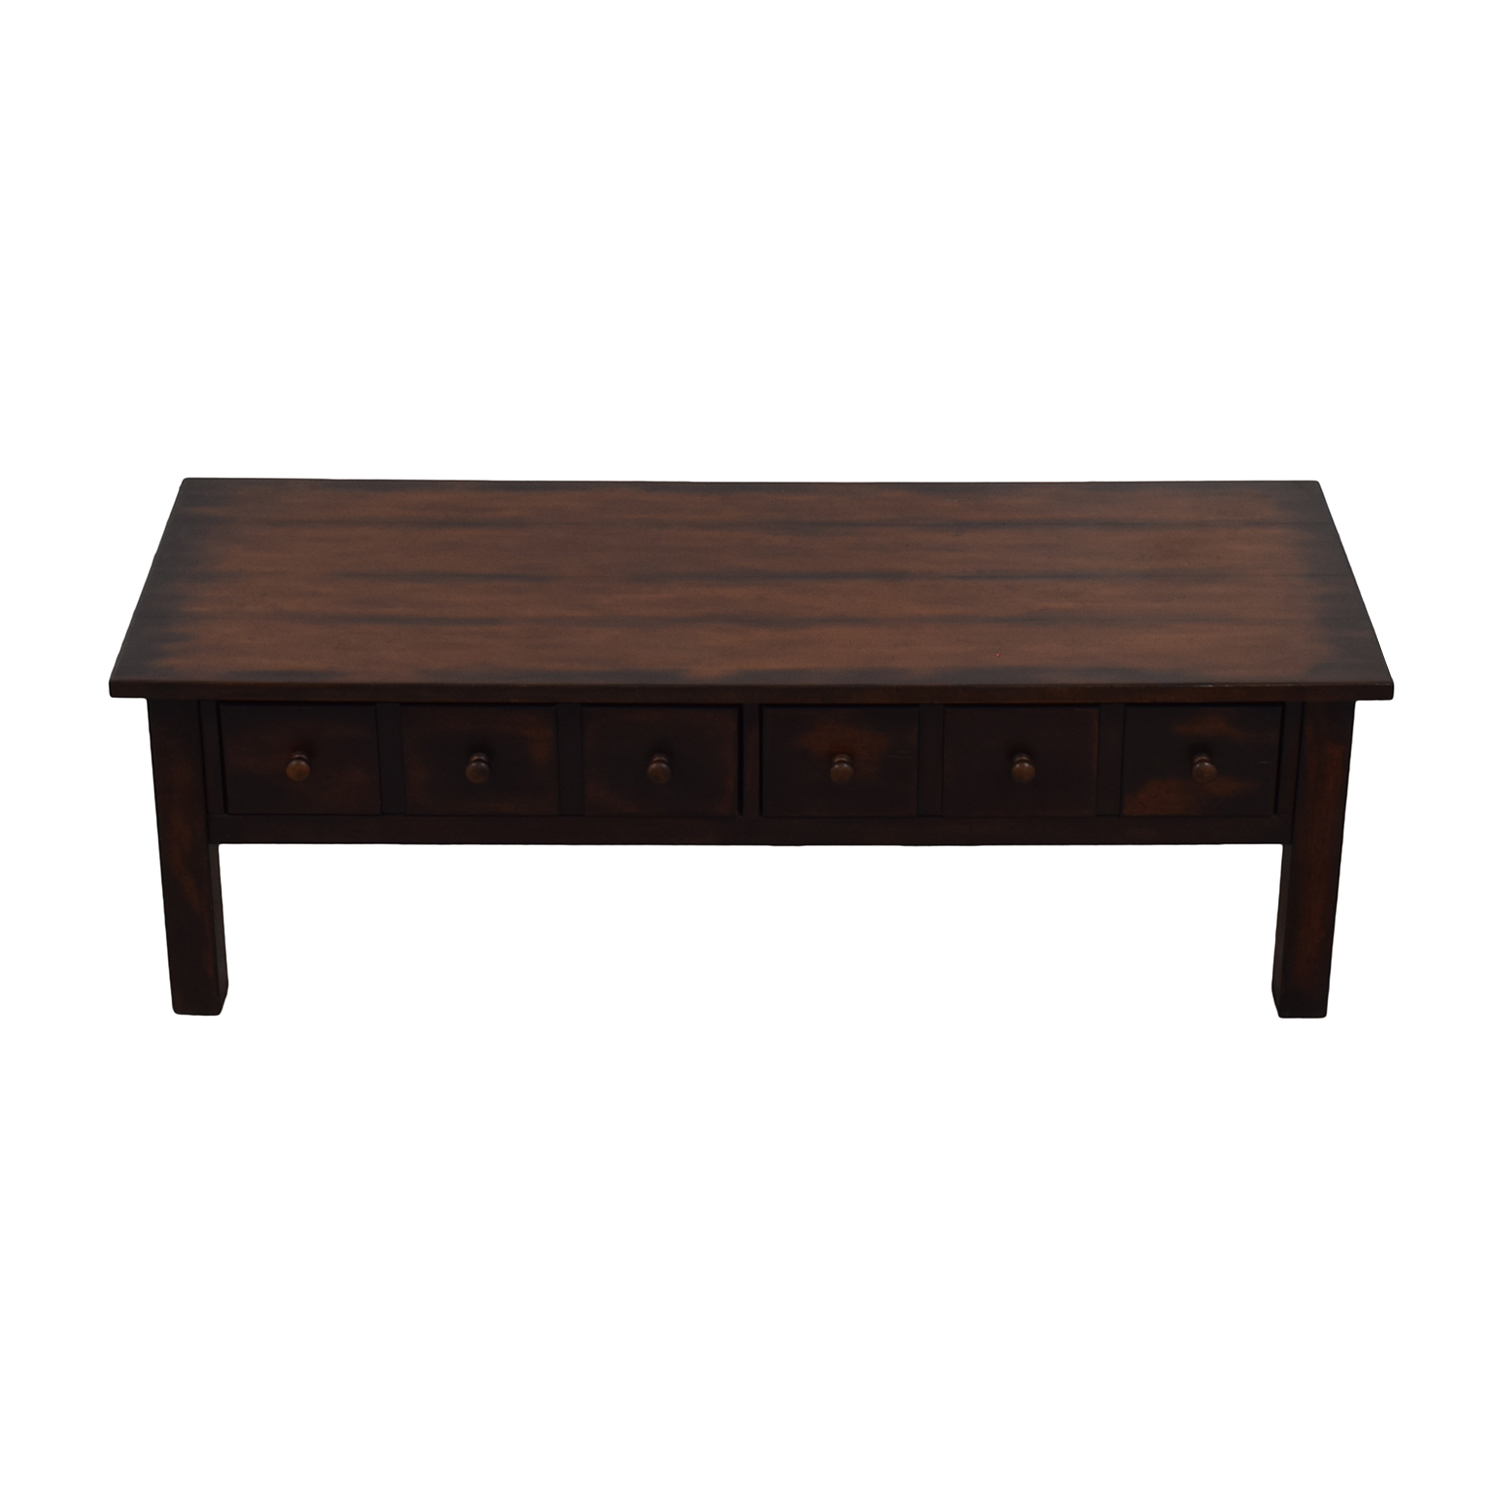 buy Pottery Barn Coffee Table with Drawers Pottery Barn